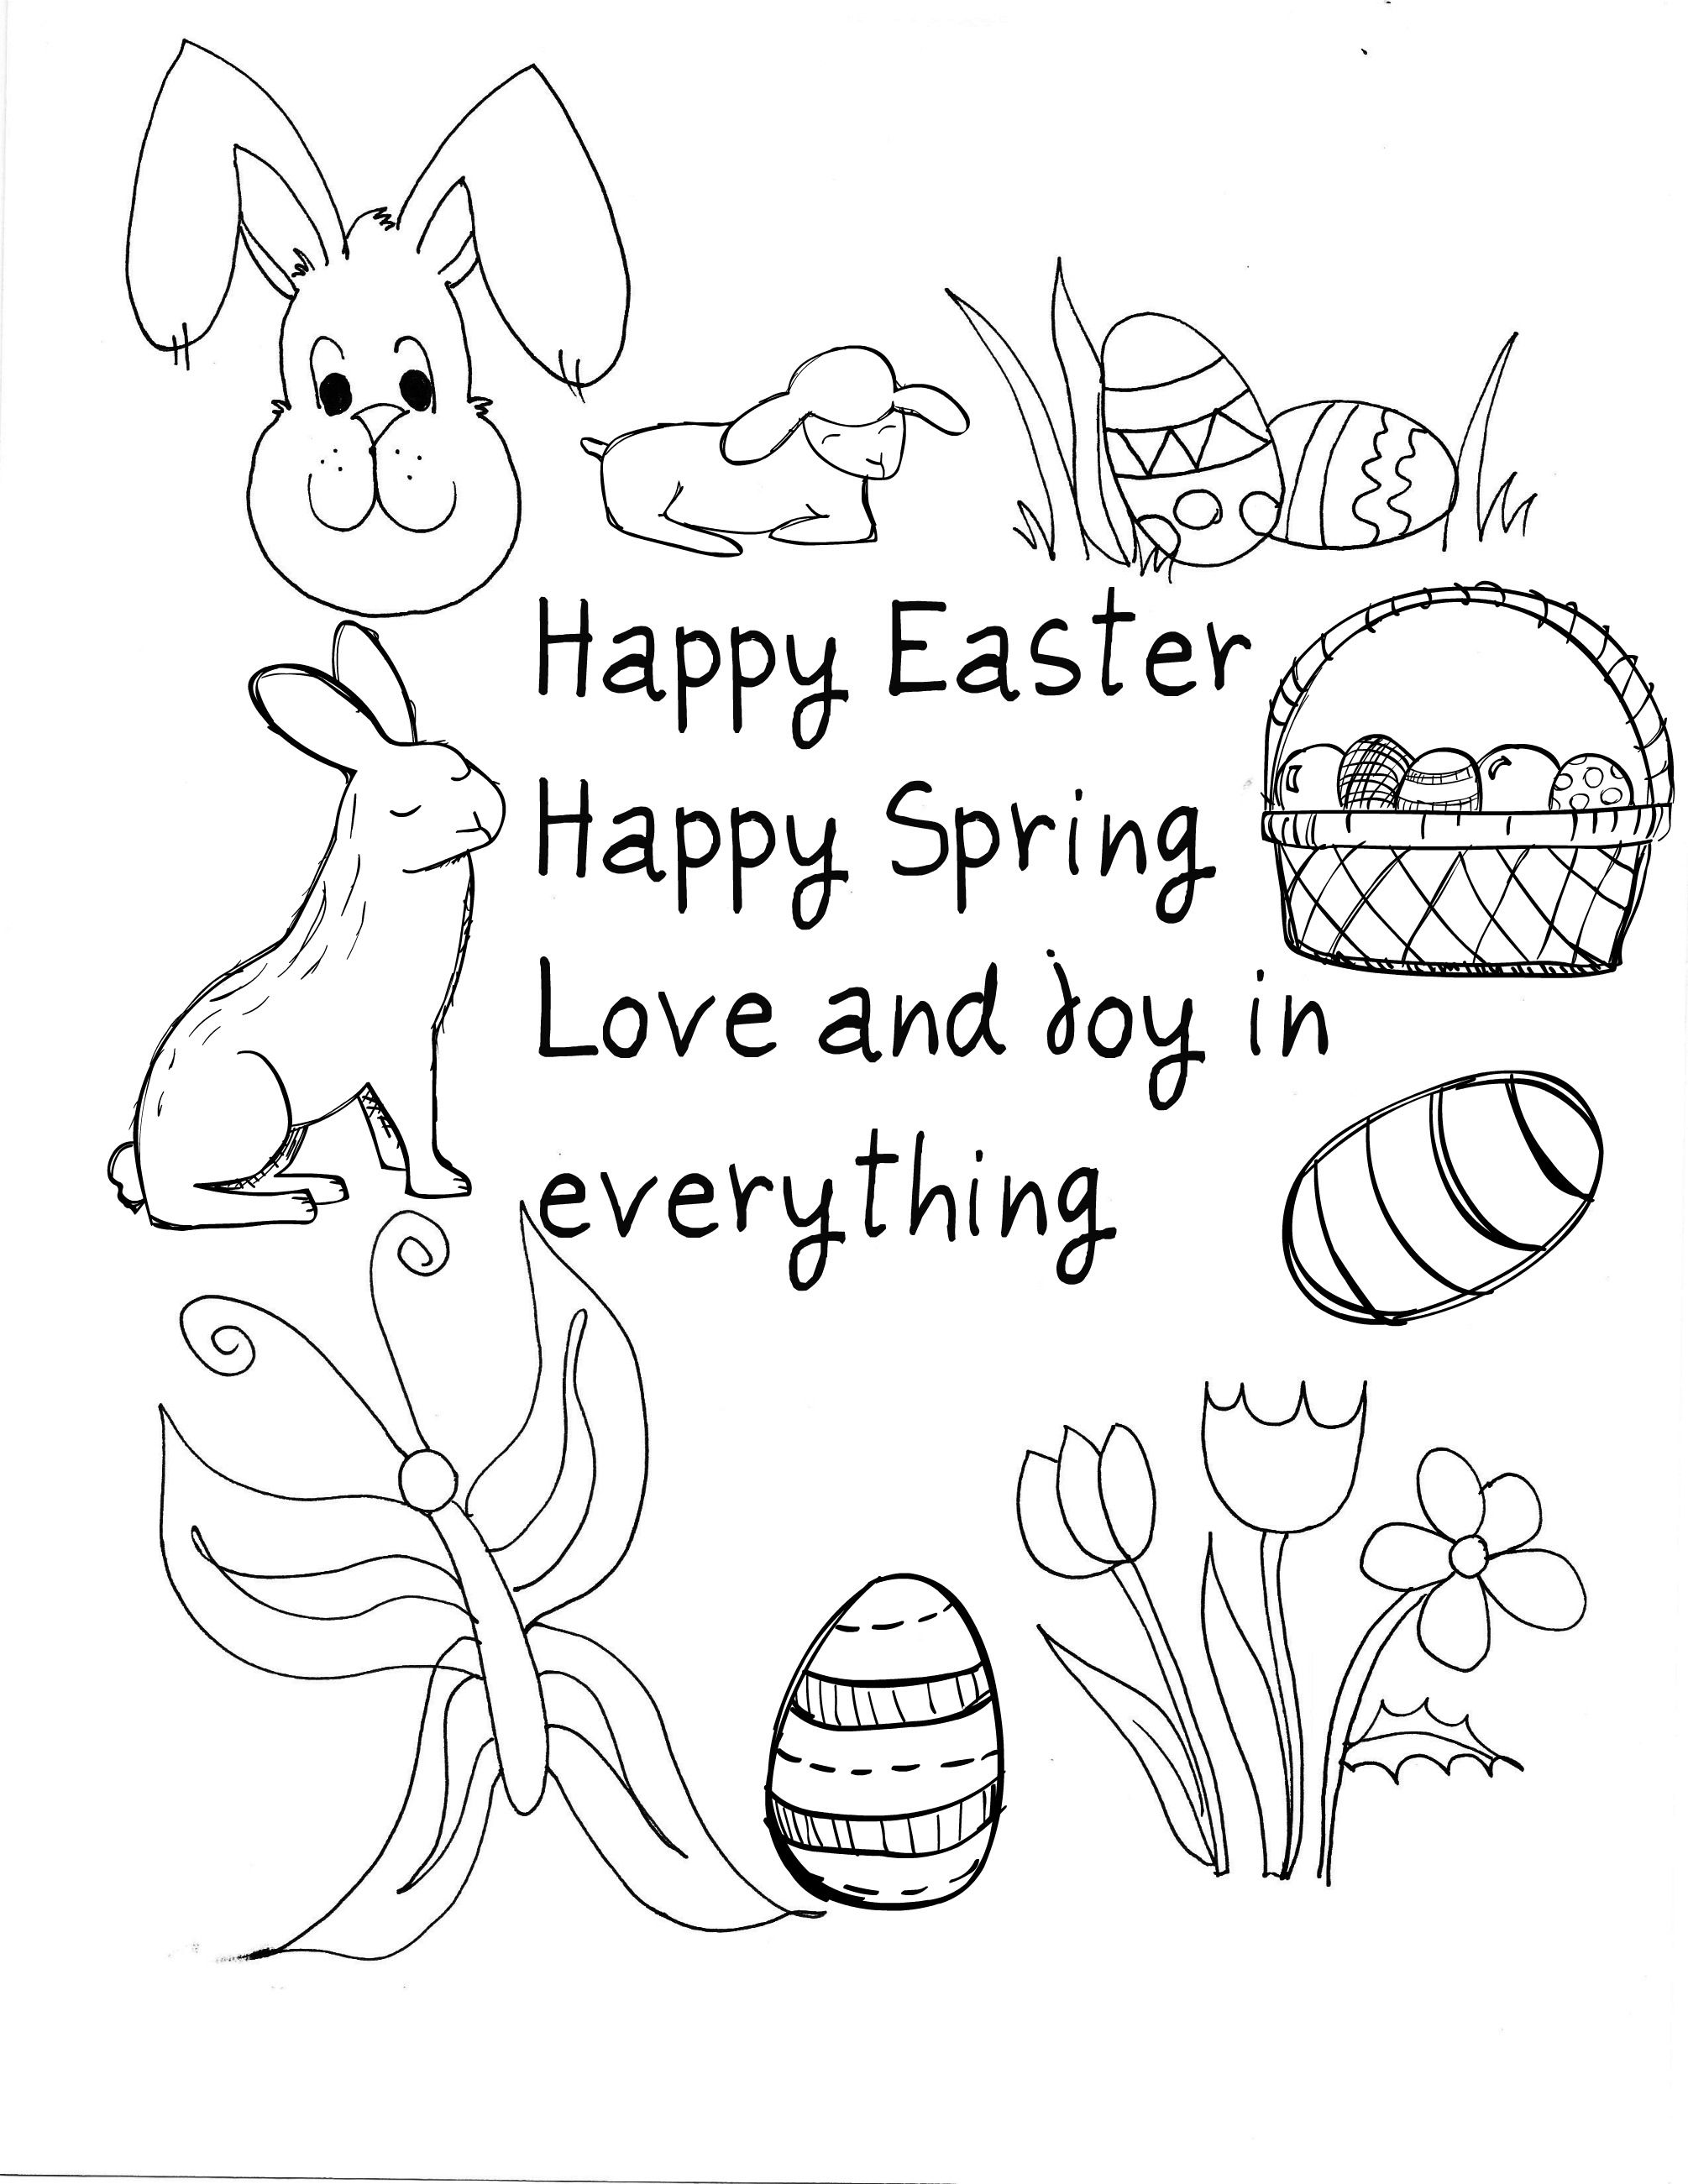 10 Easter Printable Cards To Color I just clicked on the image